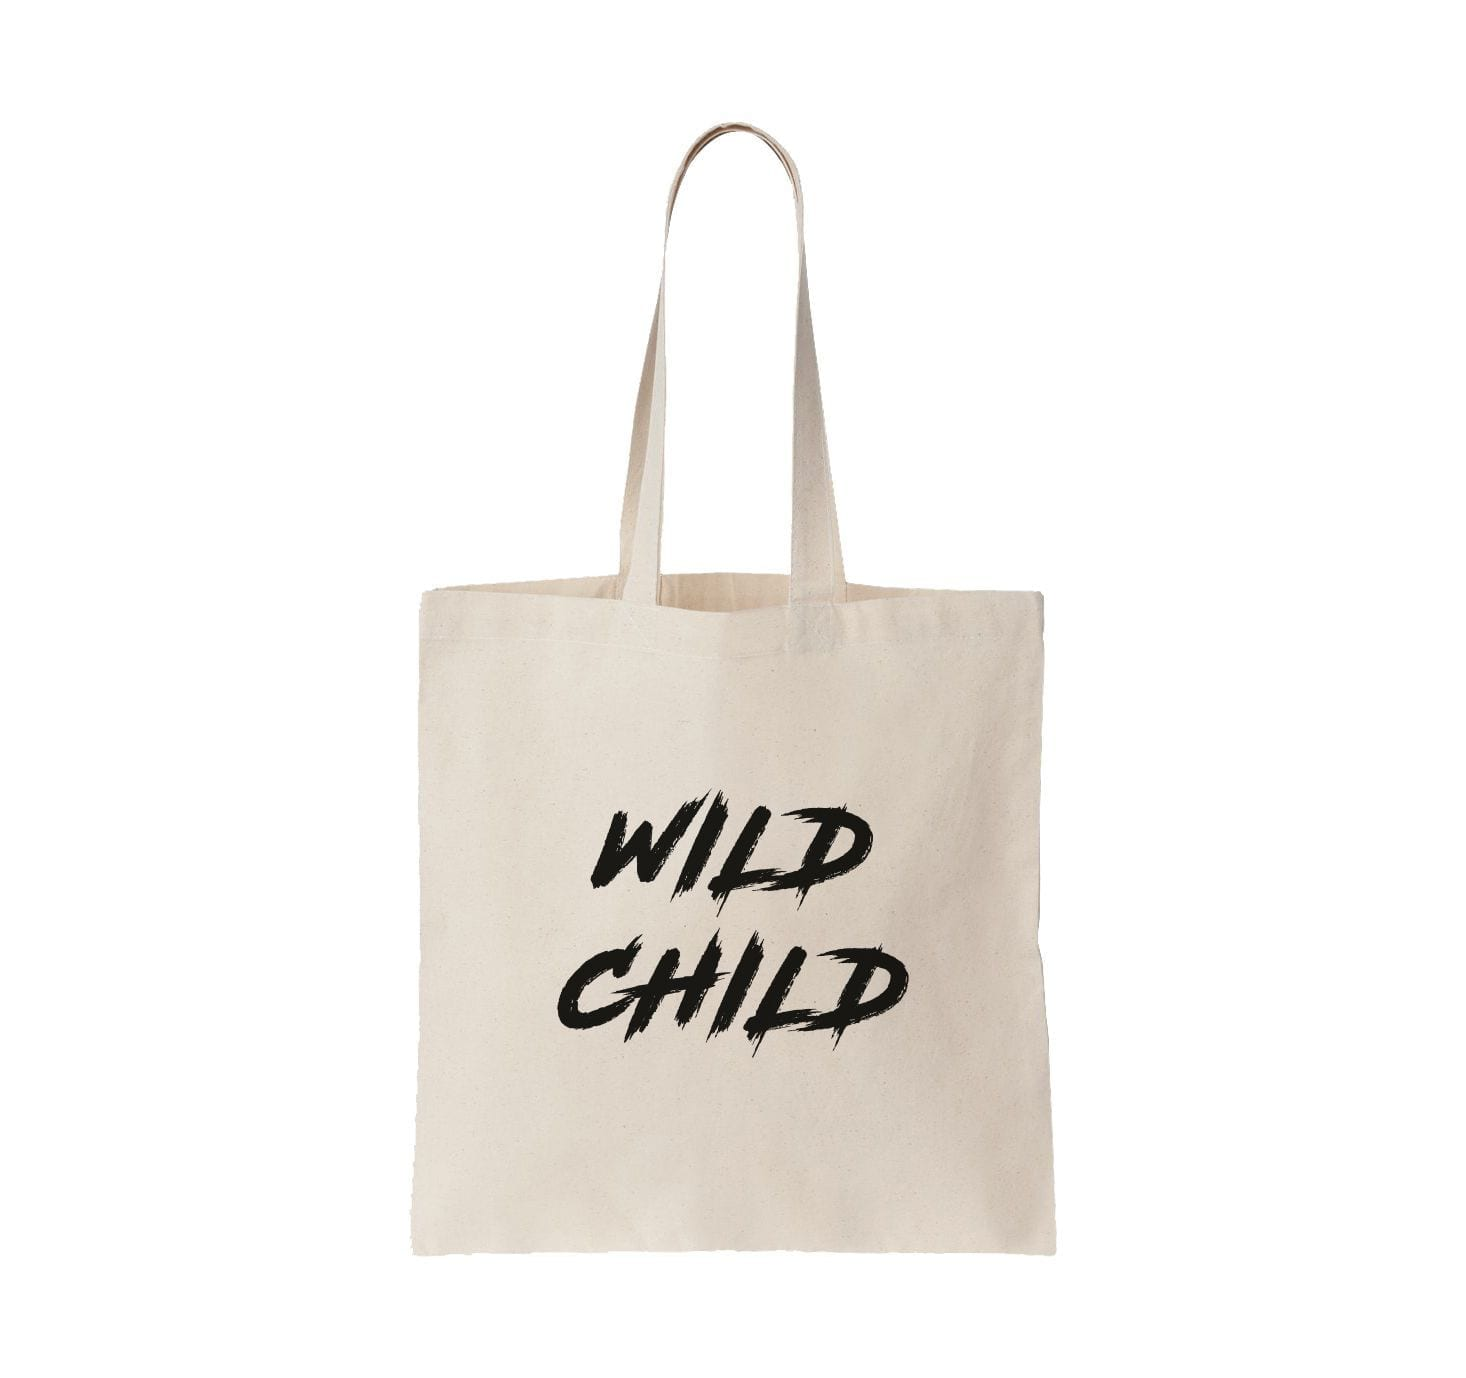 Tote bag wild child